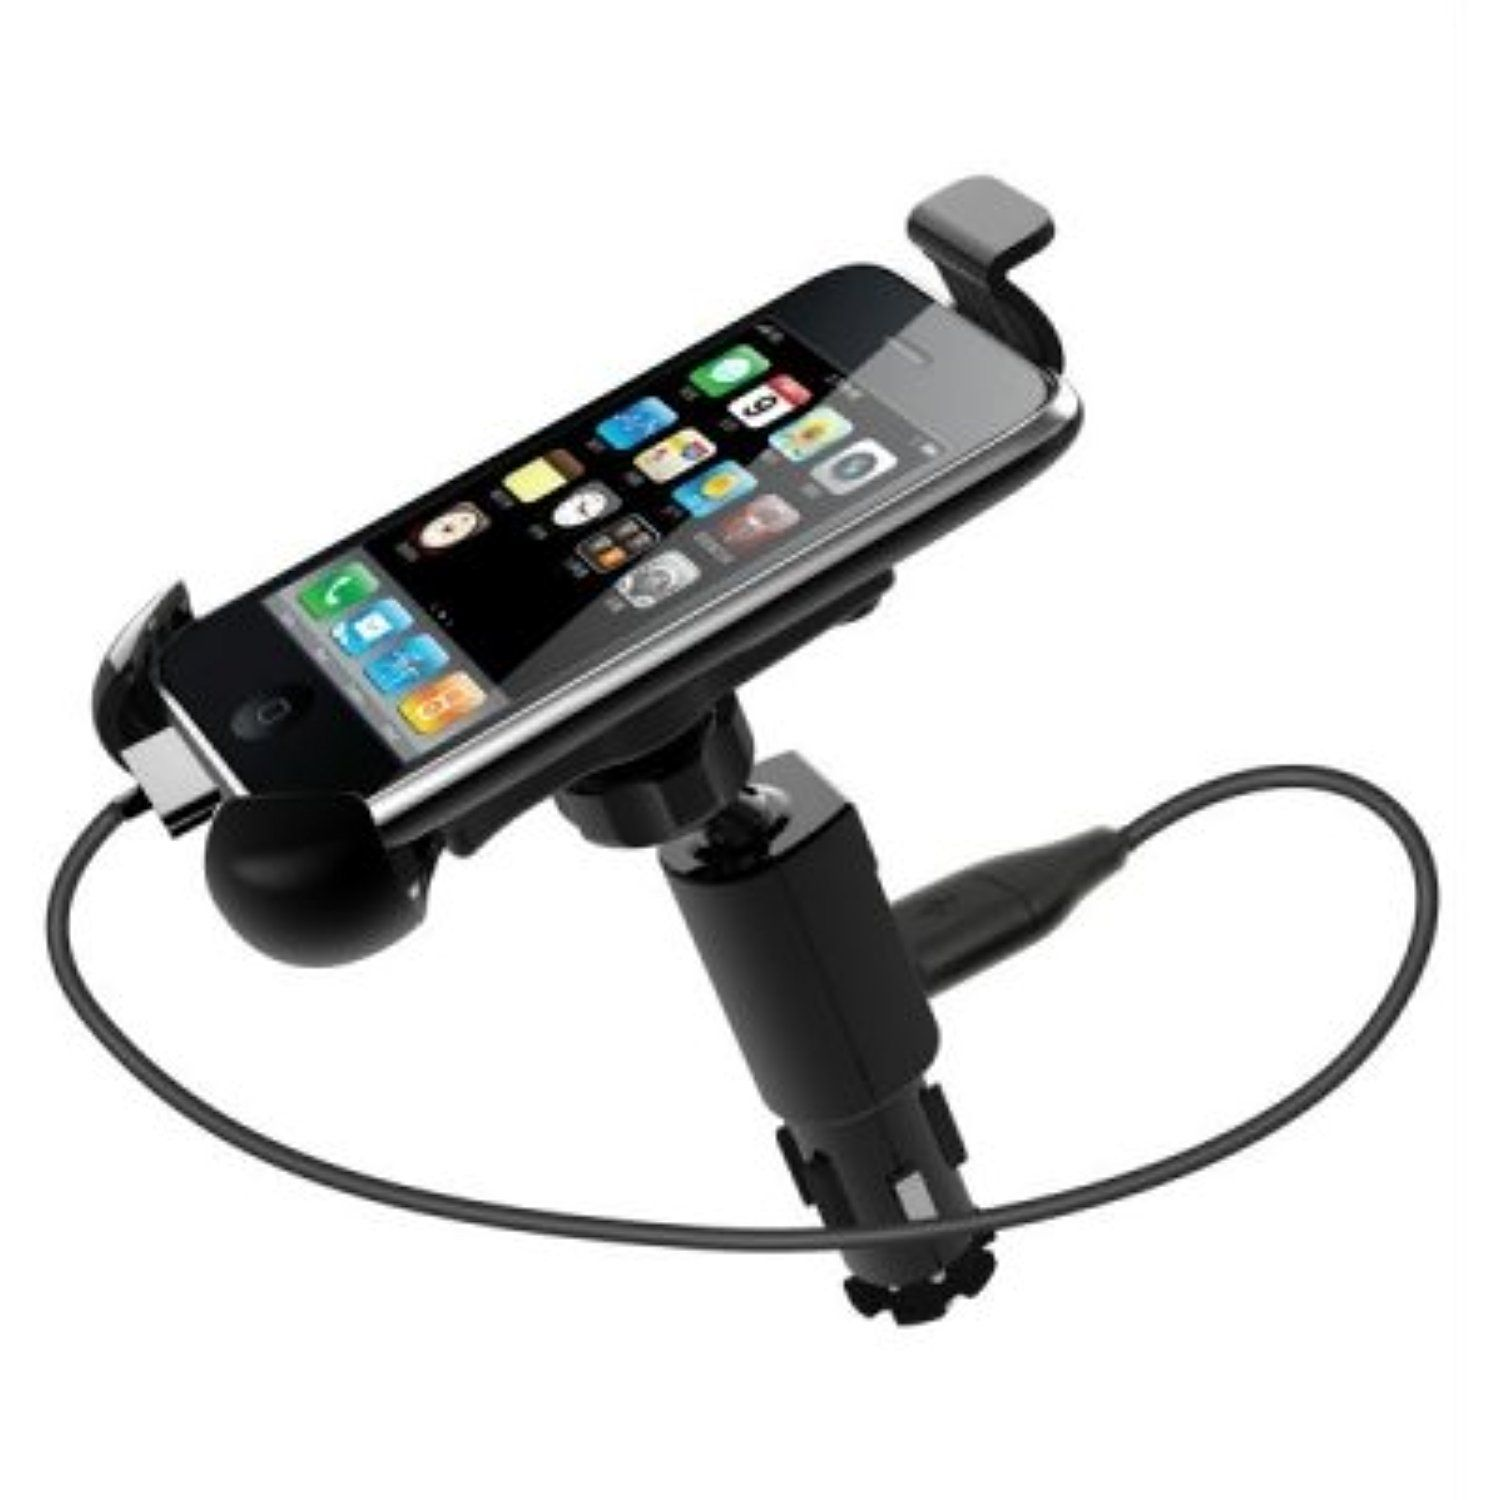 hight resolution of car gadgets 360 degree rotary universal car mounter holder cigarette lighter charger for smart phone black click image to review more details